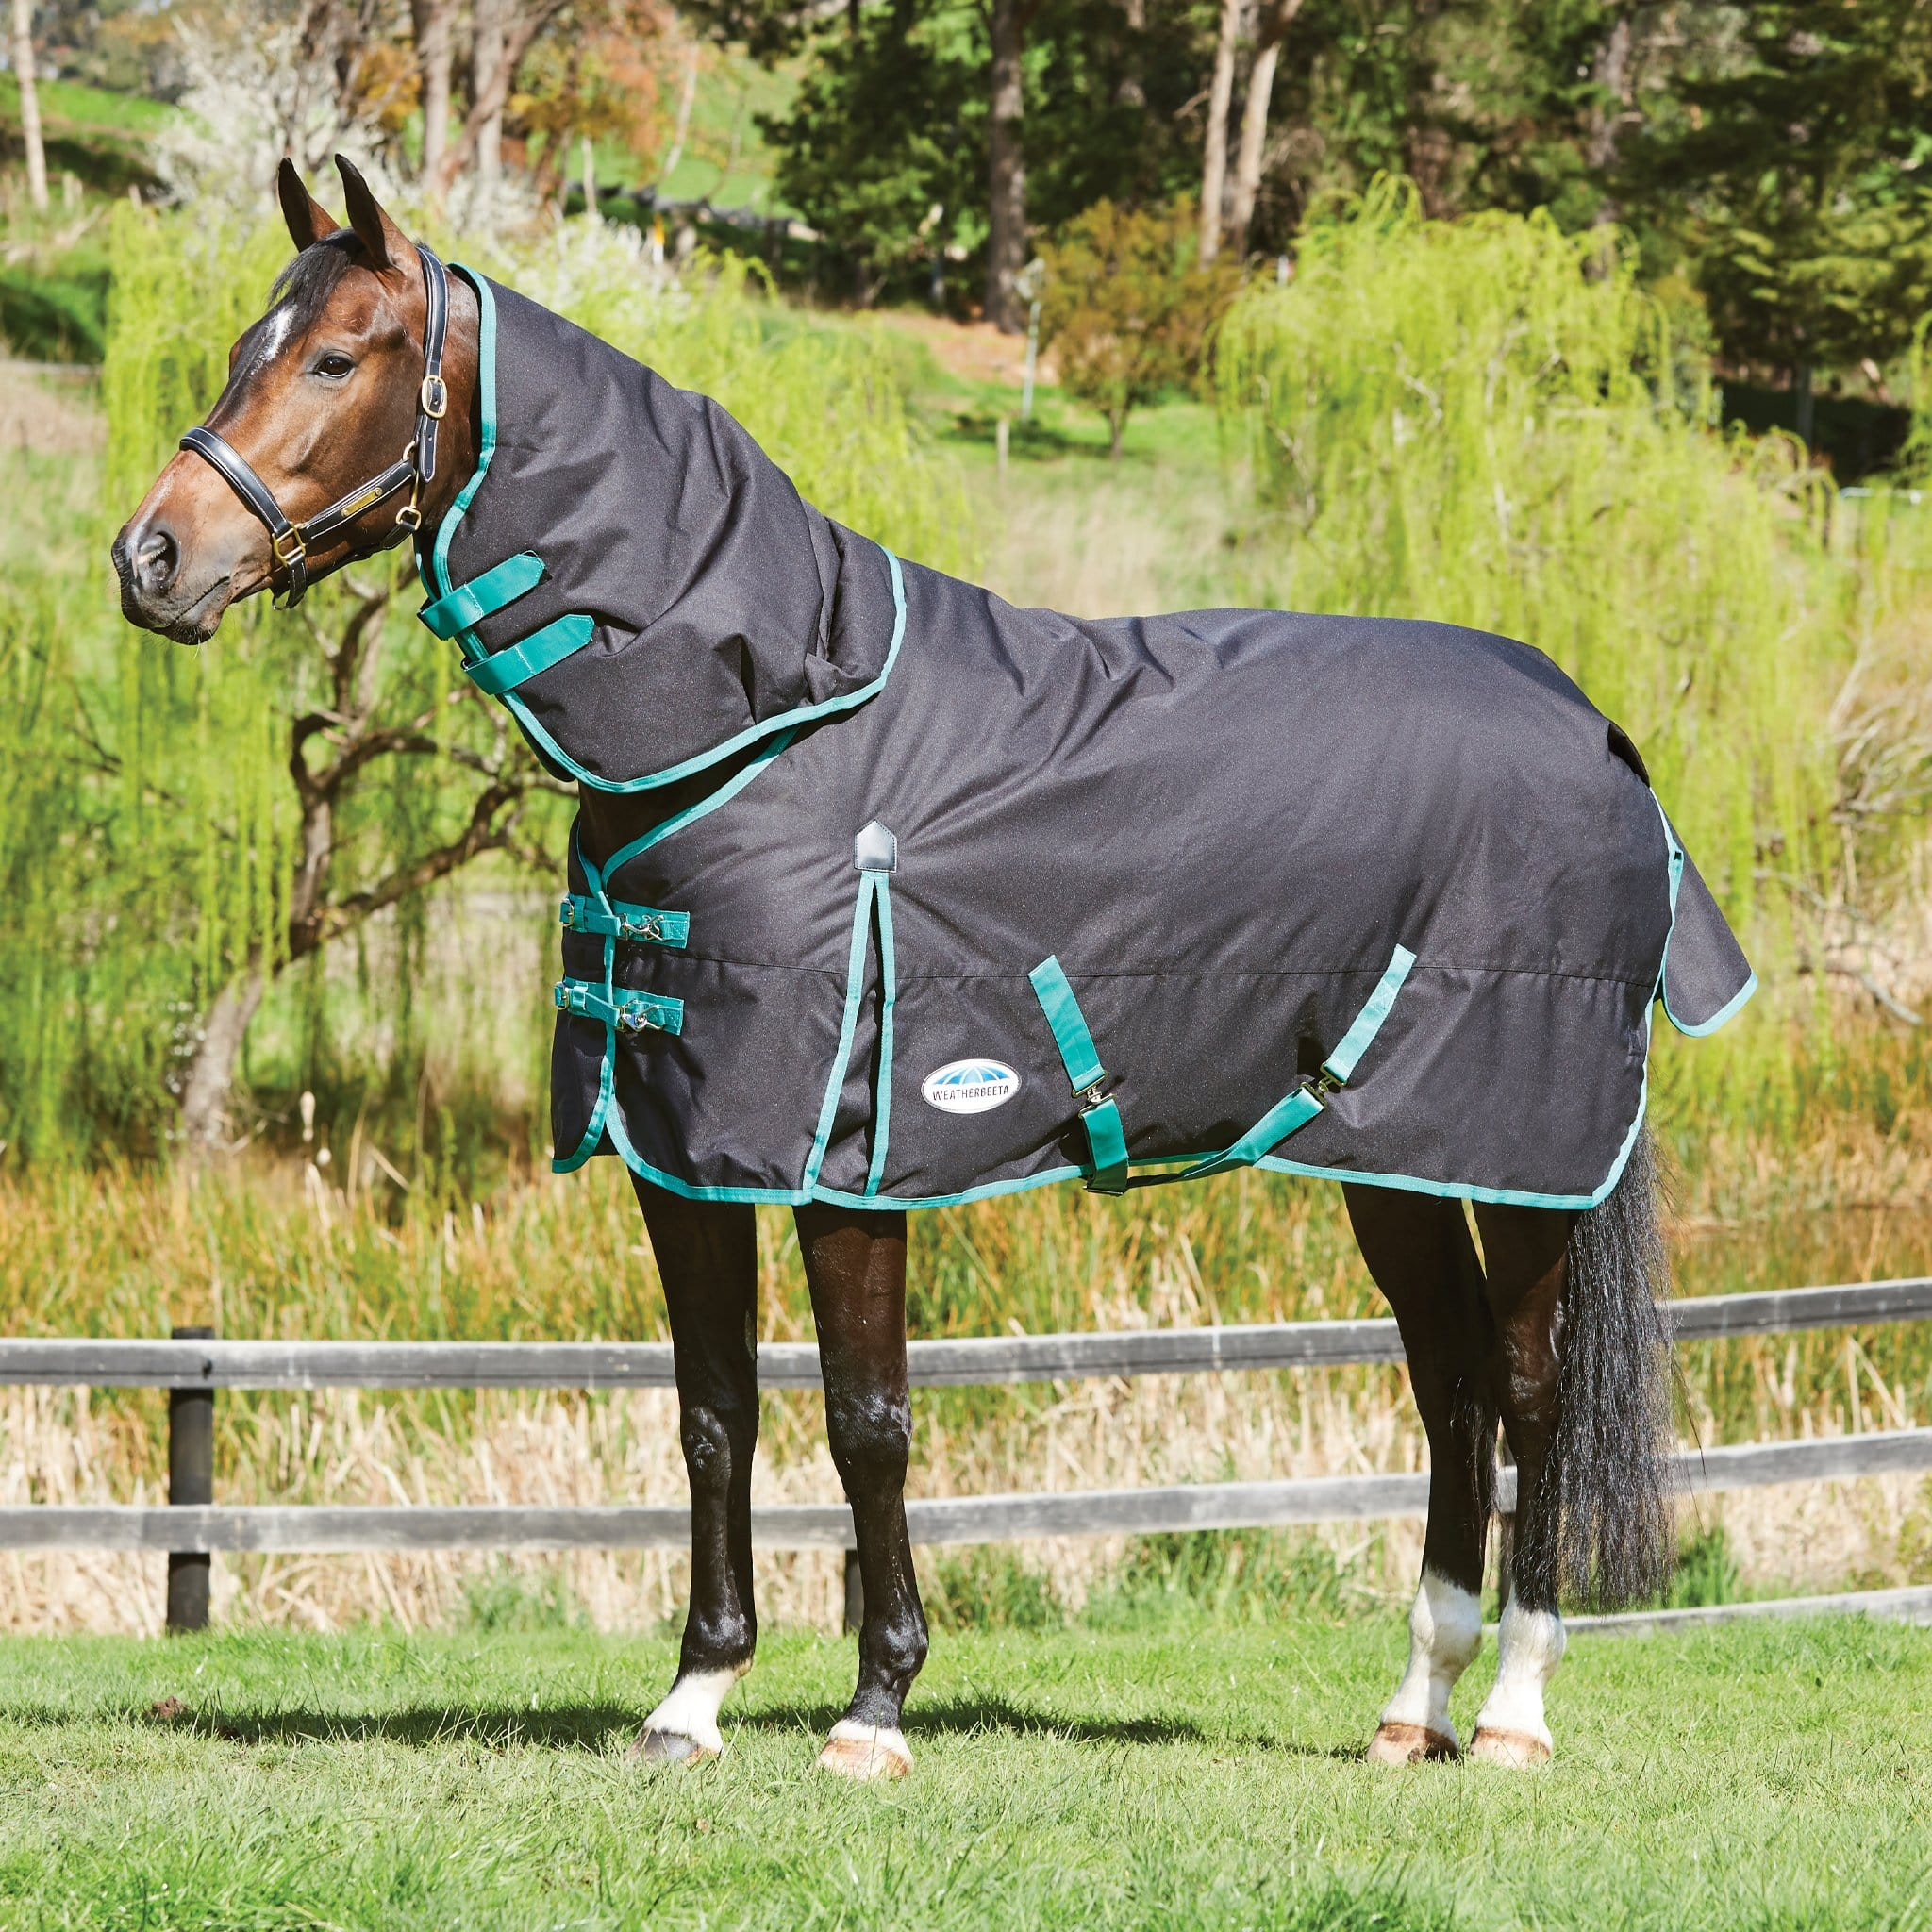 Weatherbeeta Green-Tec Mediumweight 220g Detachable Neck Turnout Rug Black with Green 1004410001